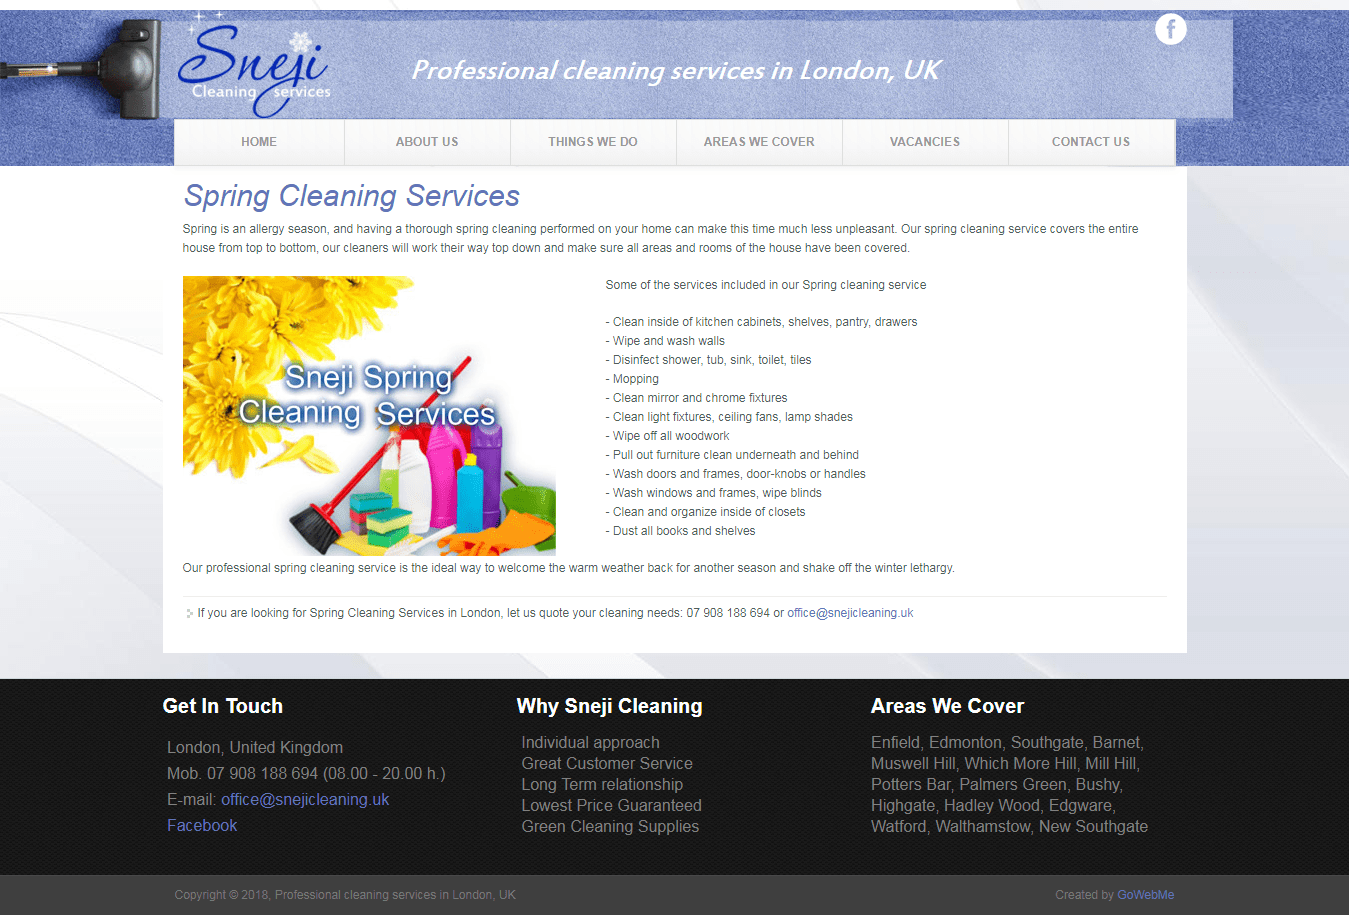 sneji-cleaning-site-5-min.png